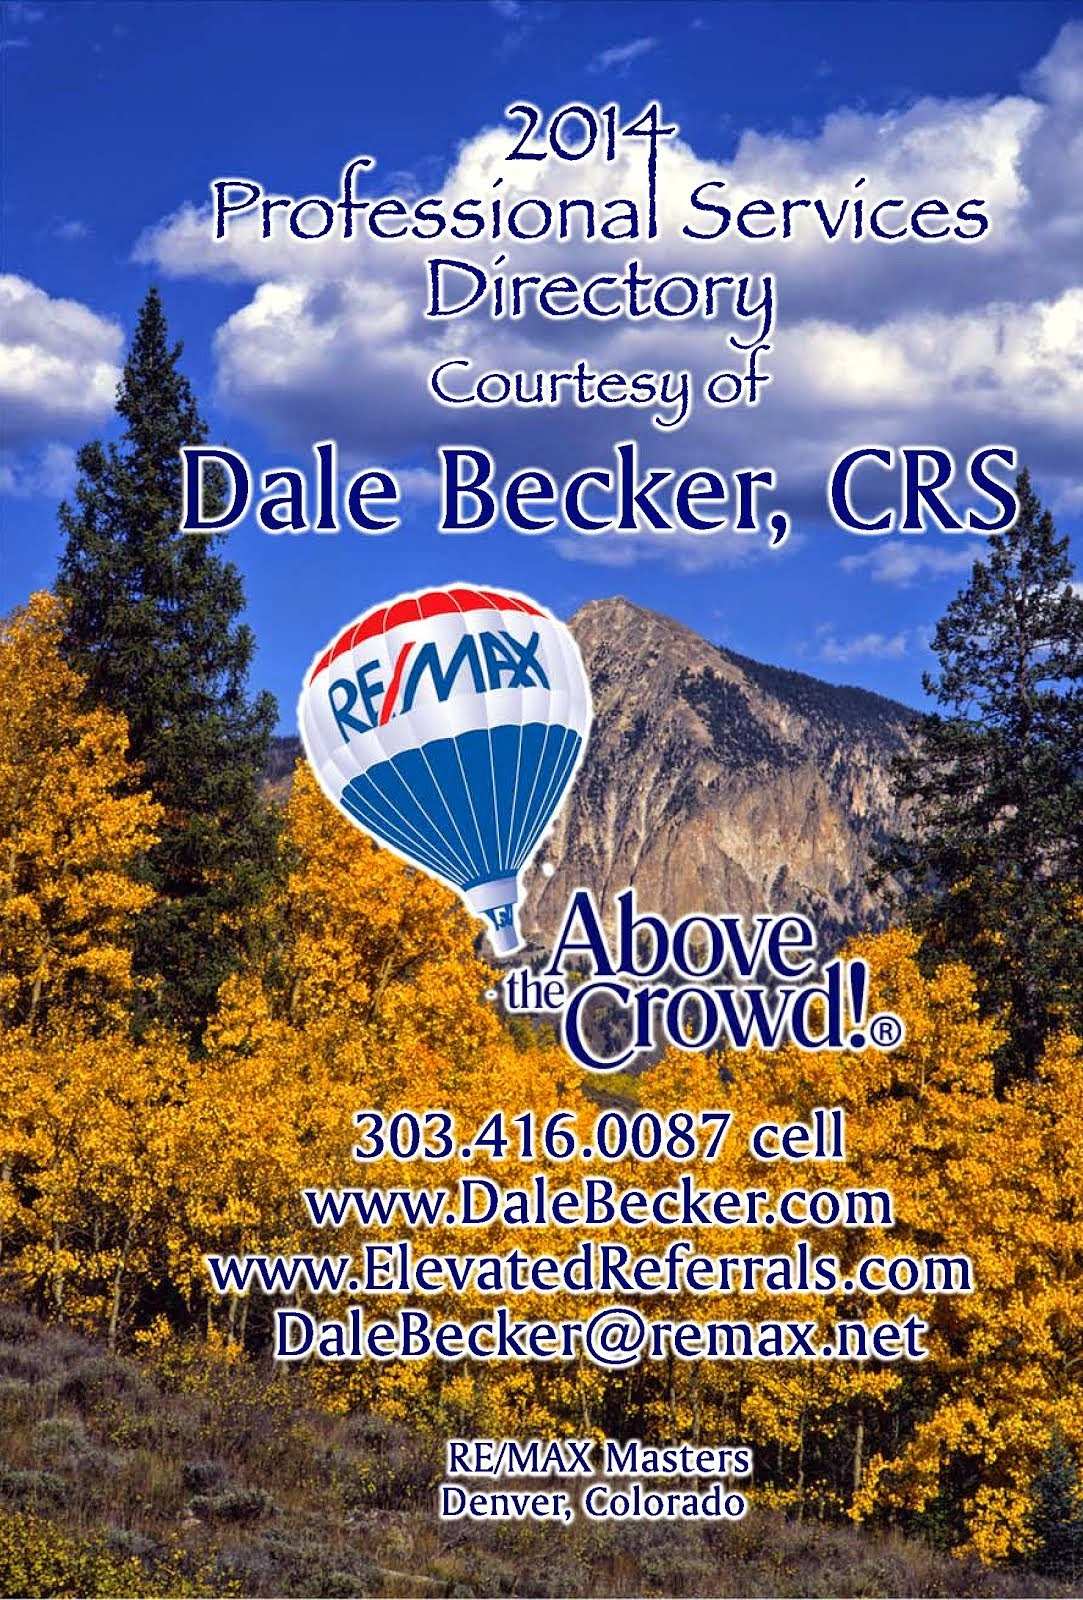 Dale Becker's 2014 Professional Services Directory